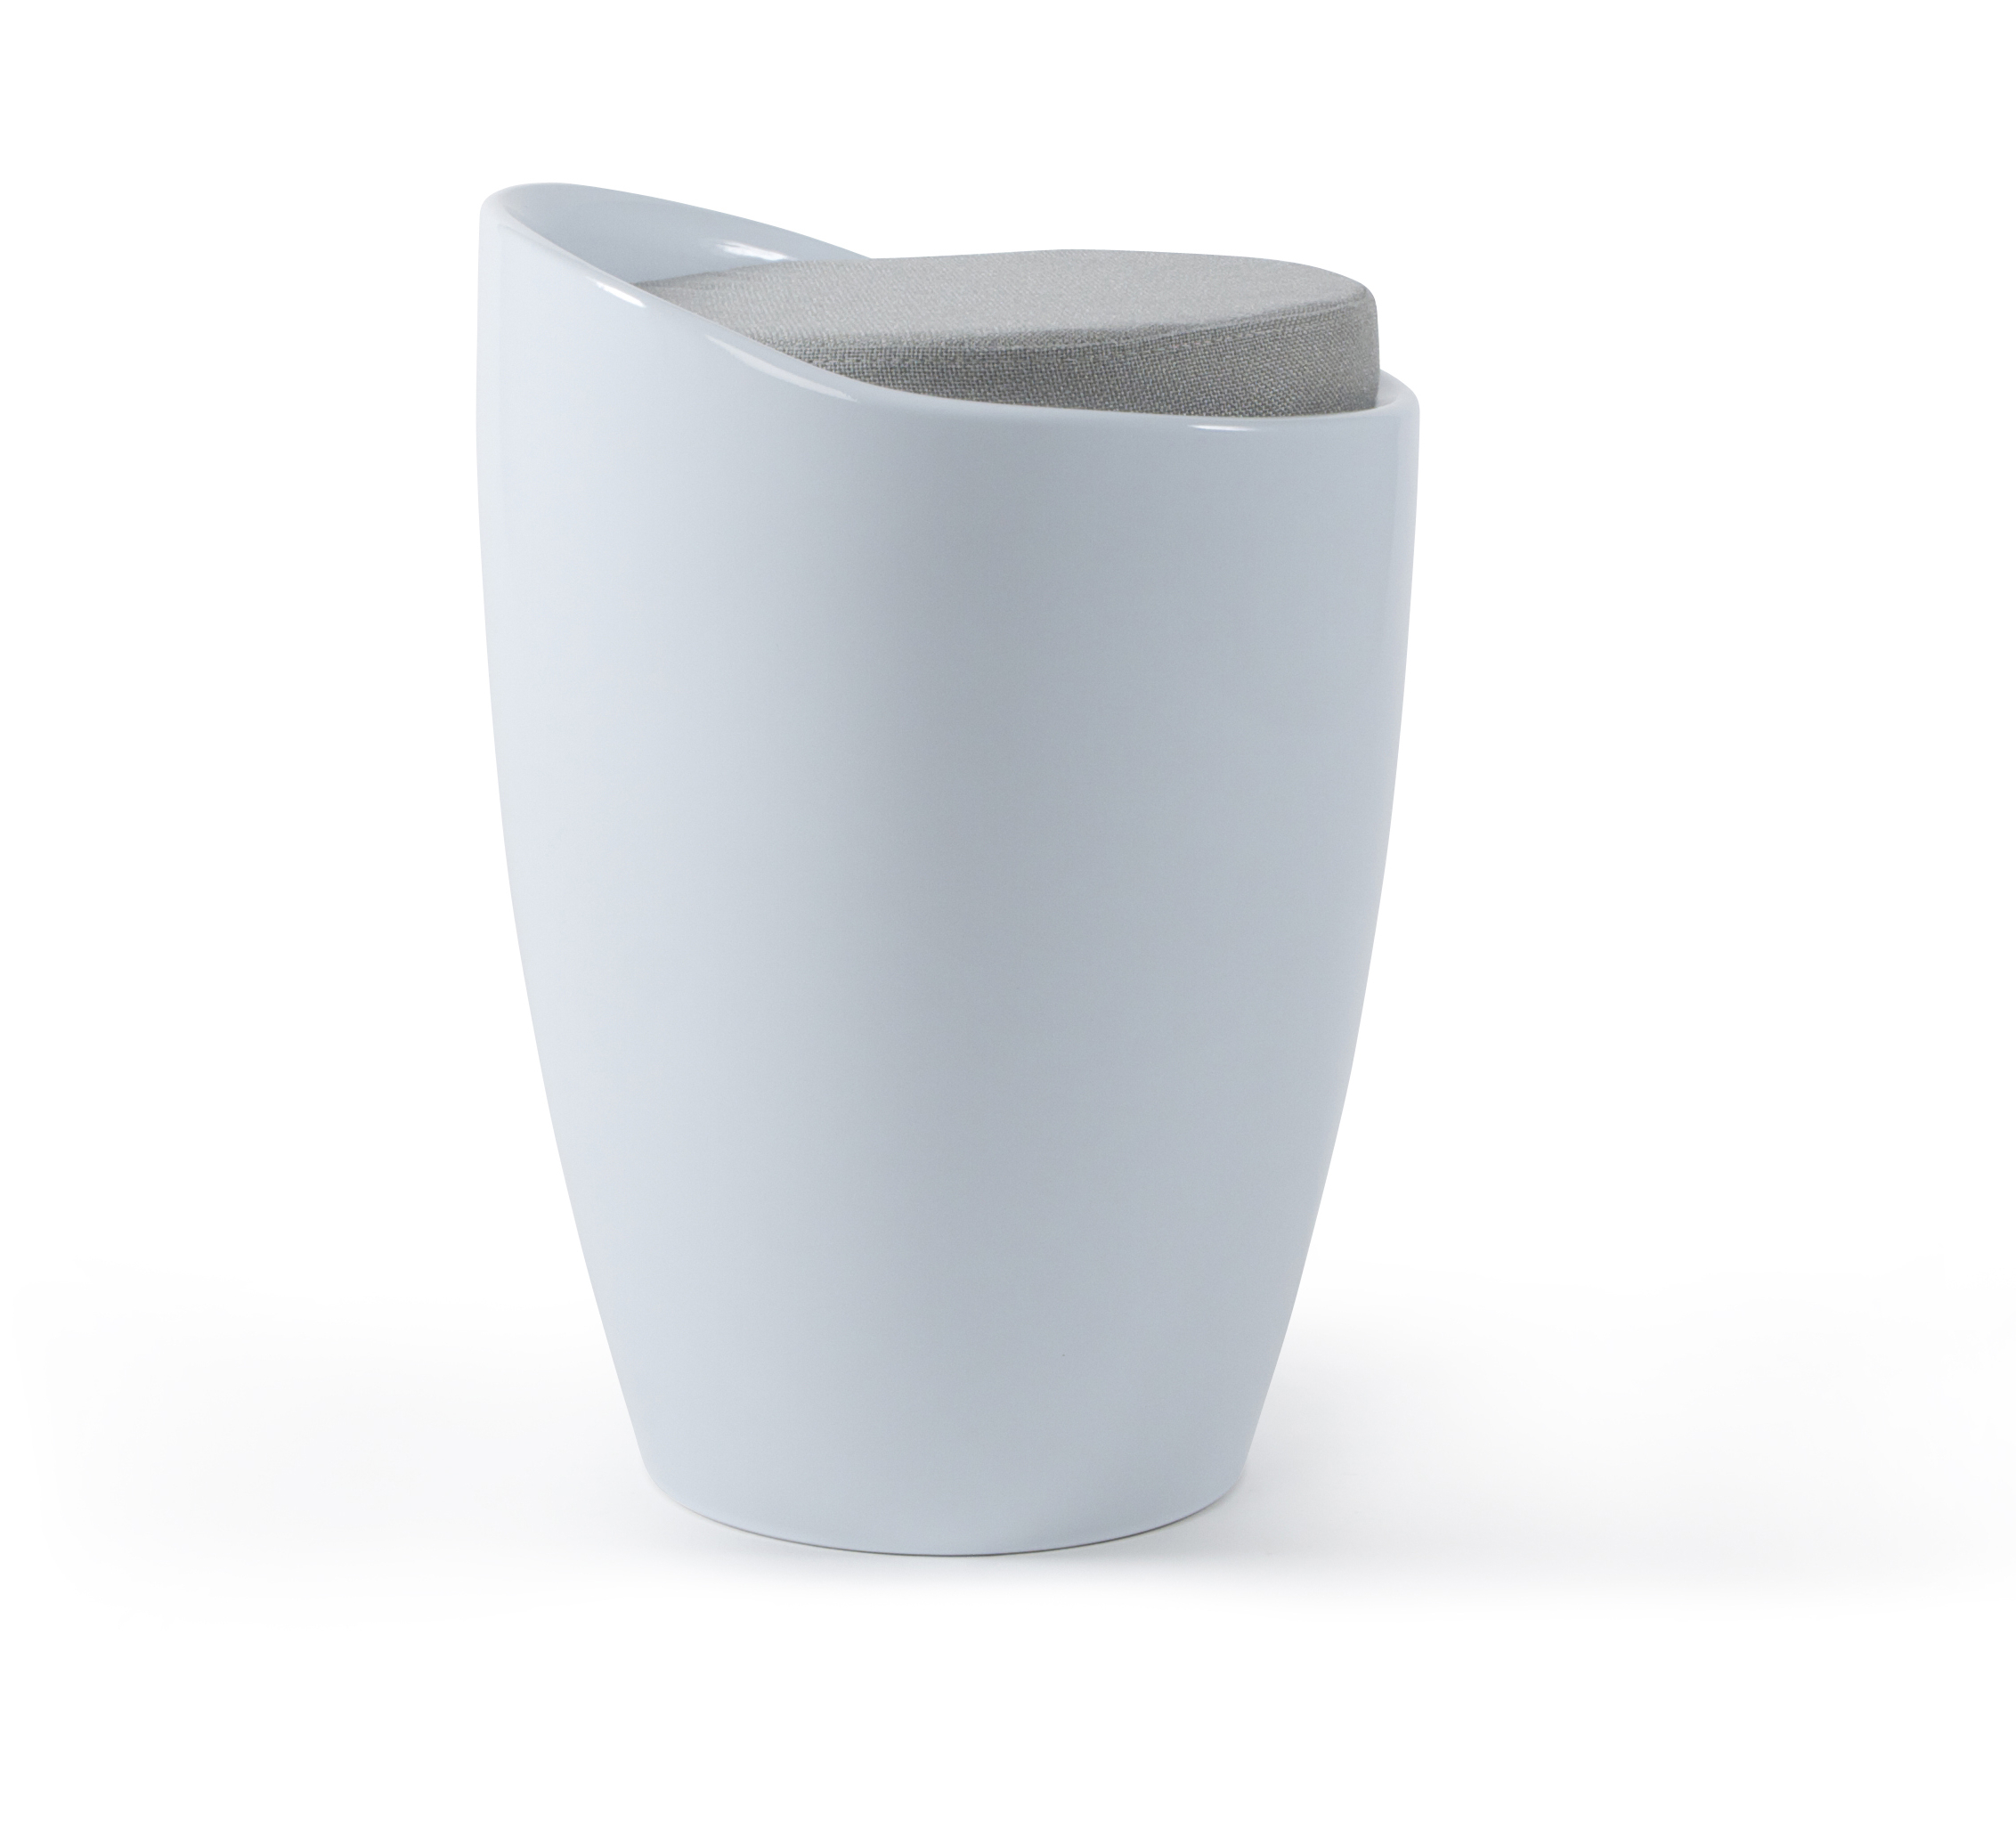 Stool With Storage | 5 Colours | Home Office Trend | Free With Fifi Ceramic Garden Stools (View 17 of 25)